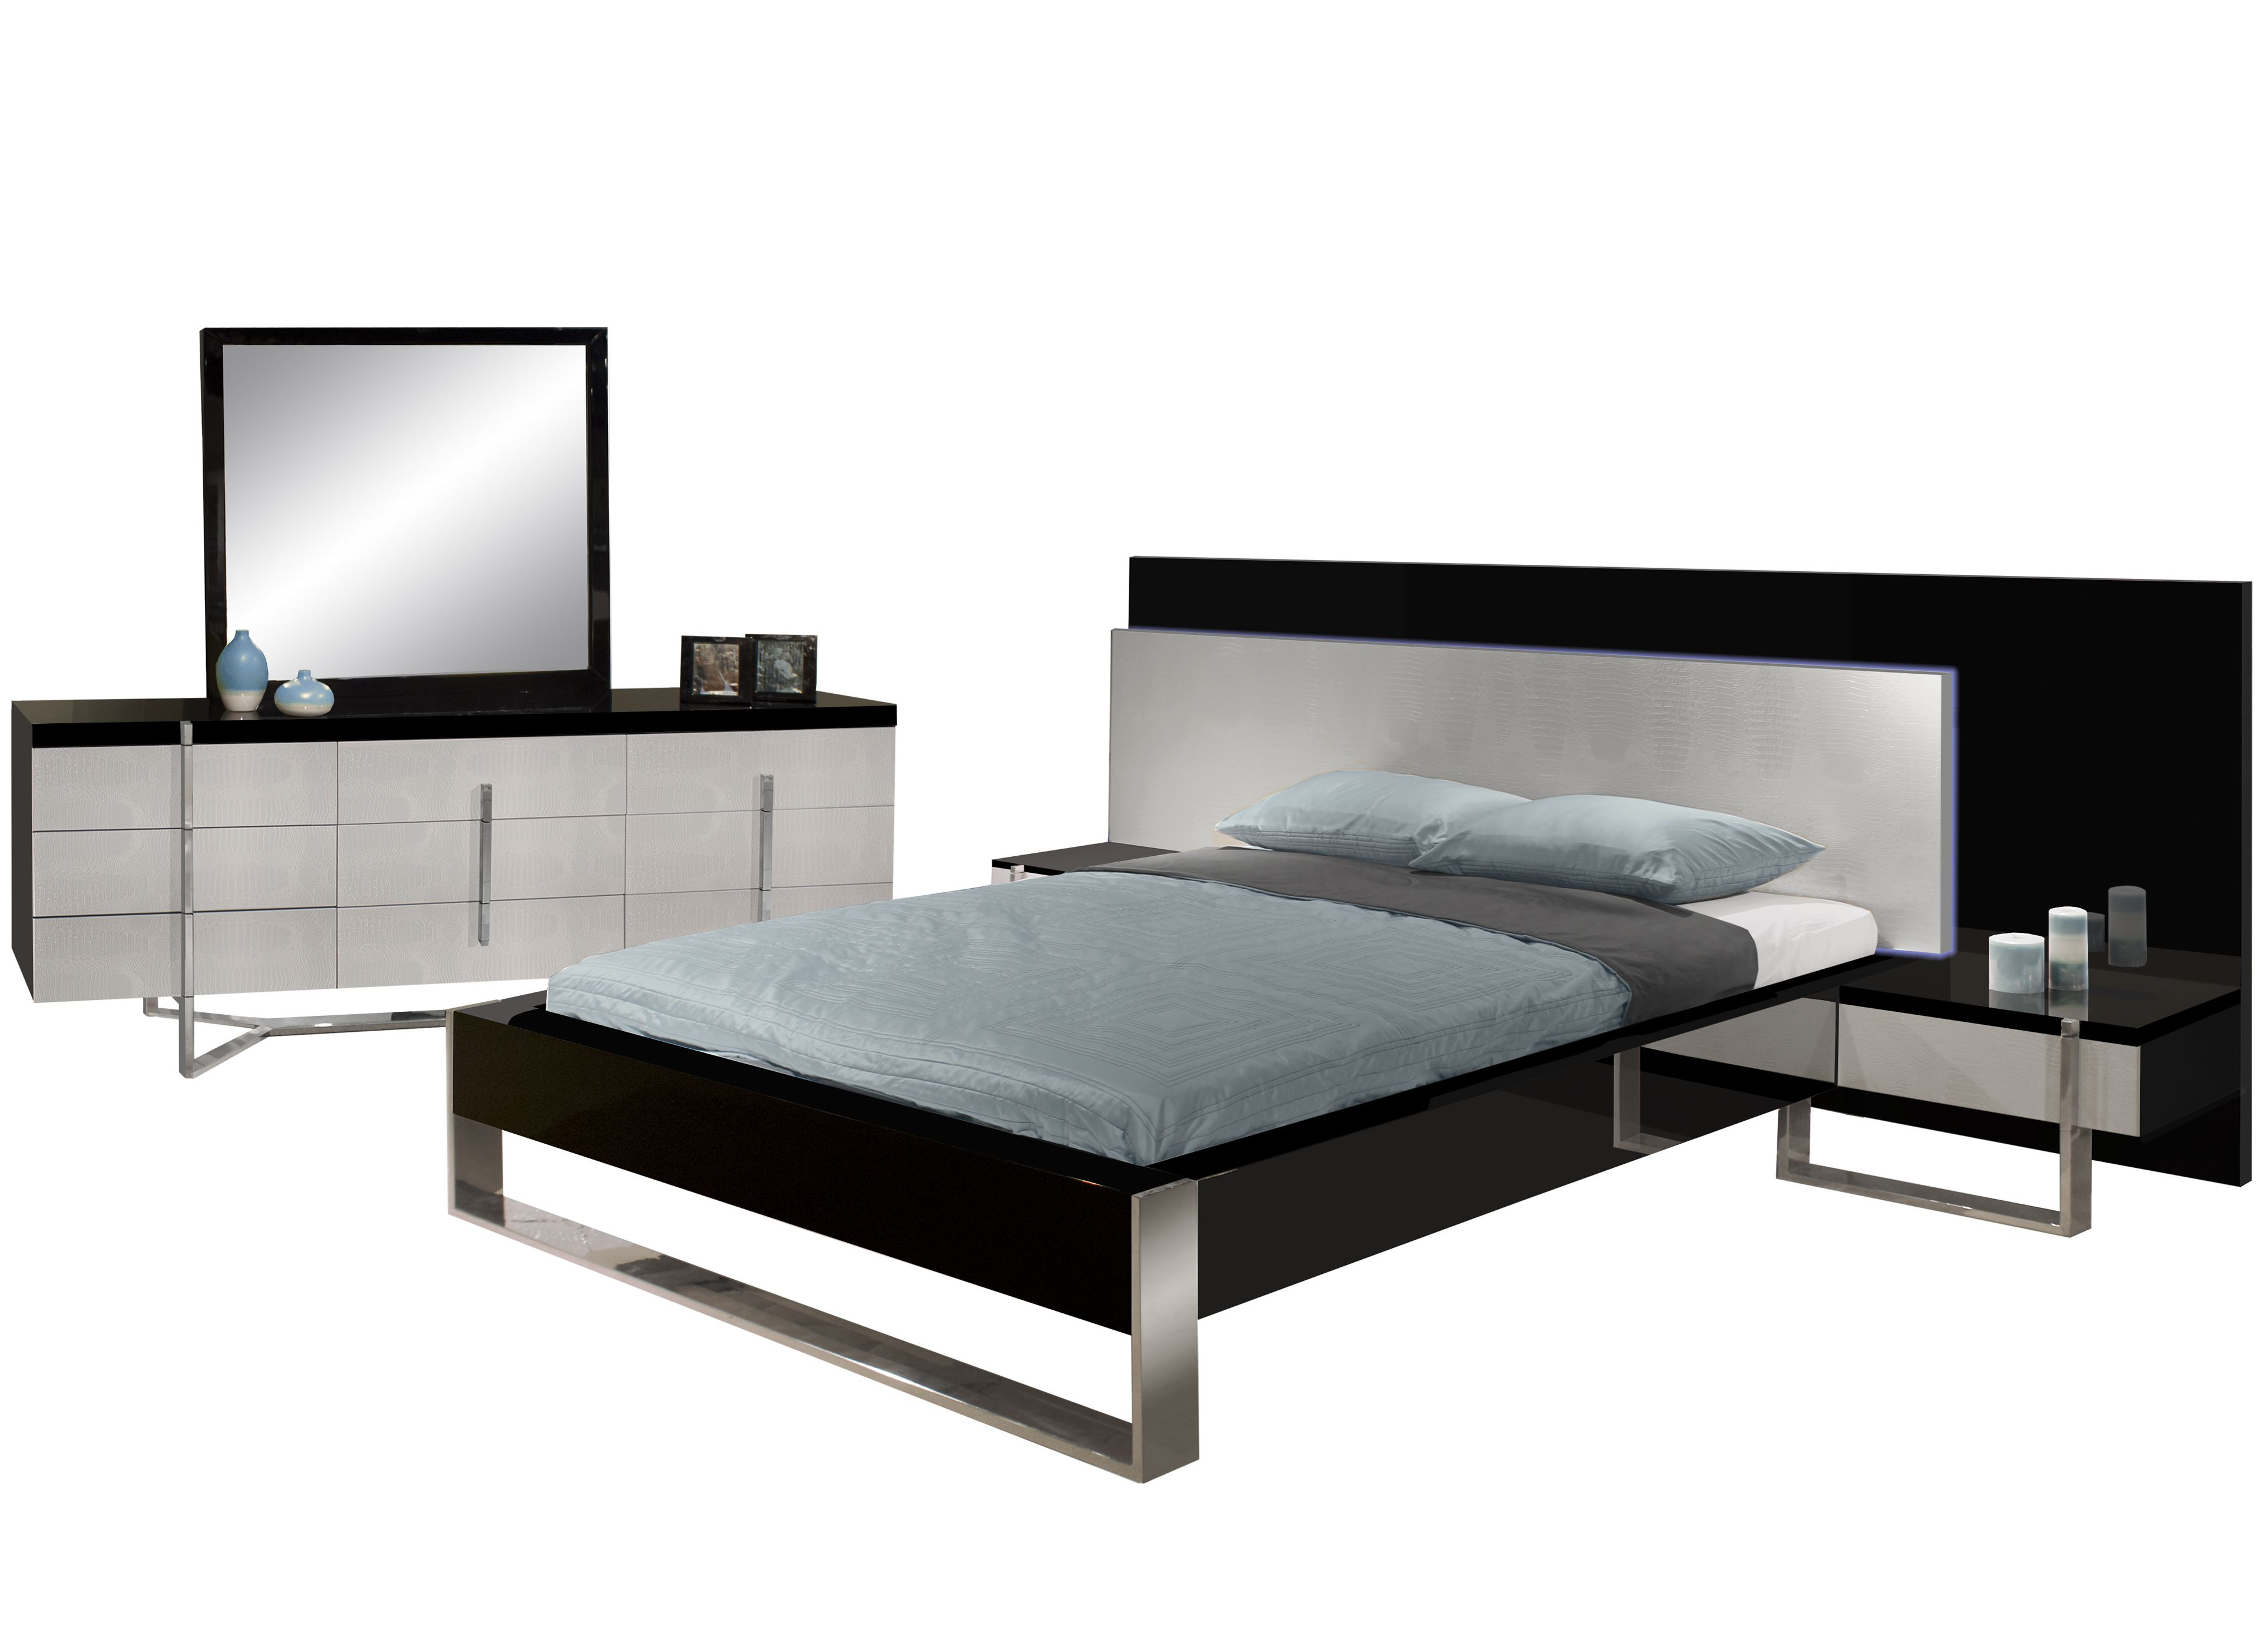 Martelli Bedroom Set - Truly unique black and gray ...